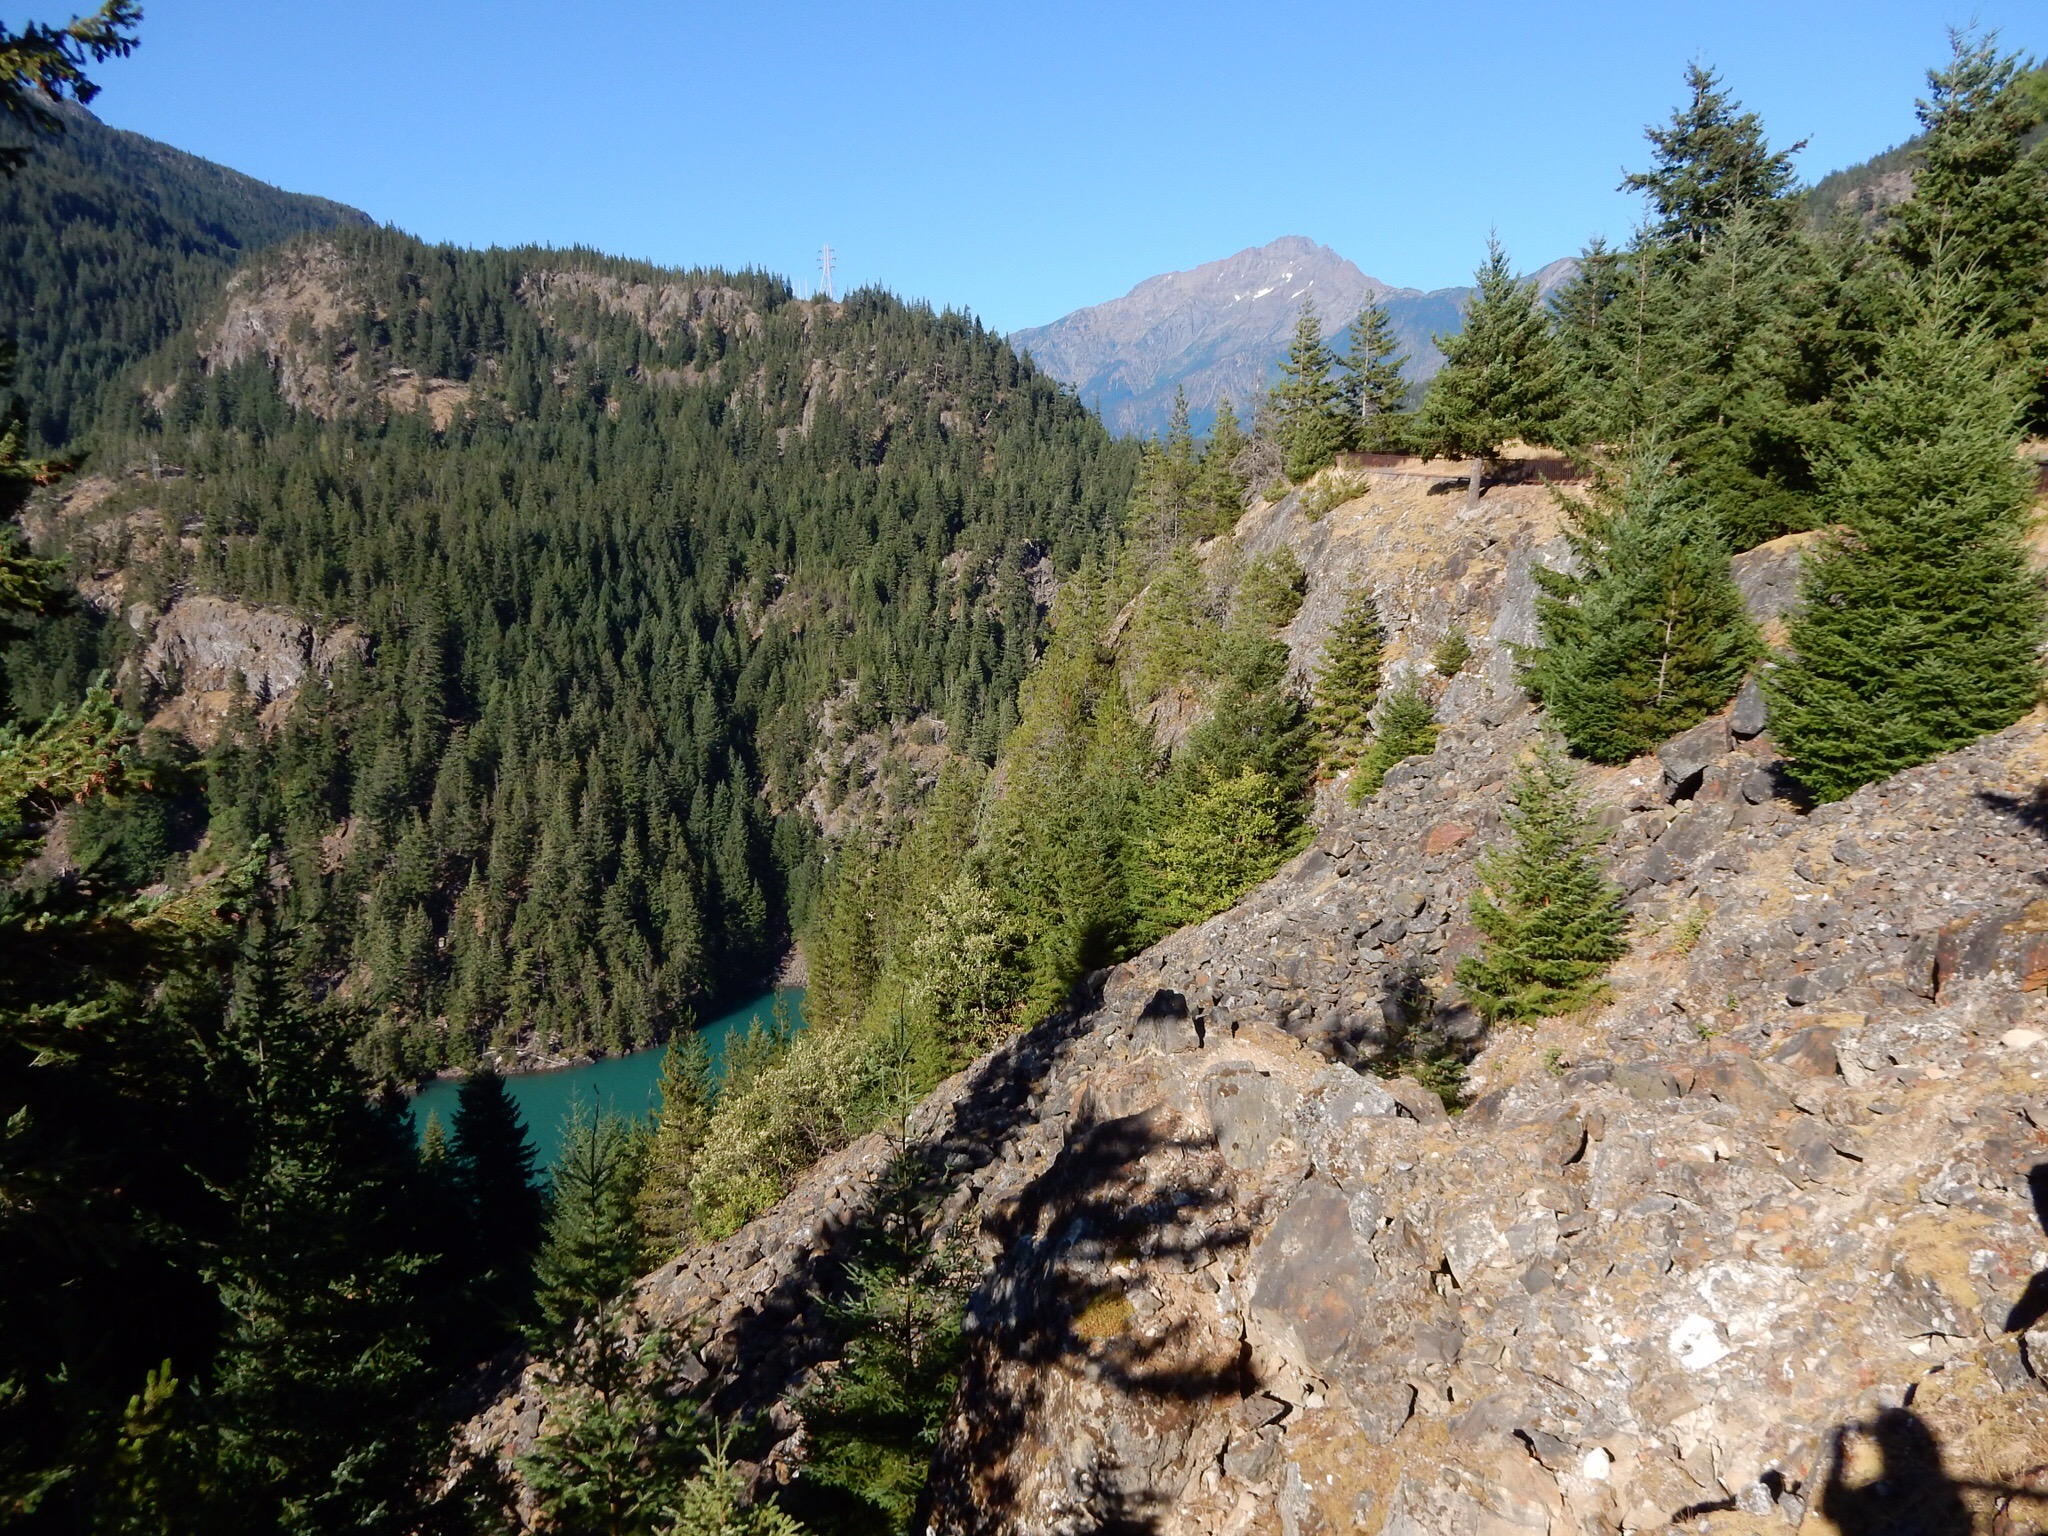 West leg of Diablo Lake.